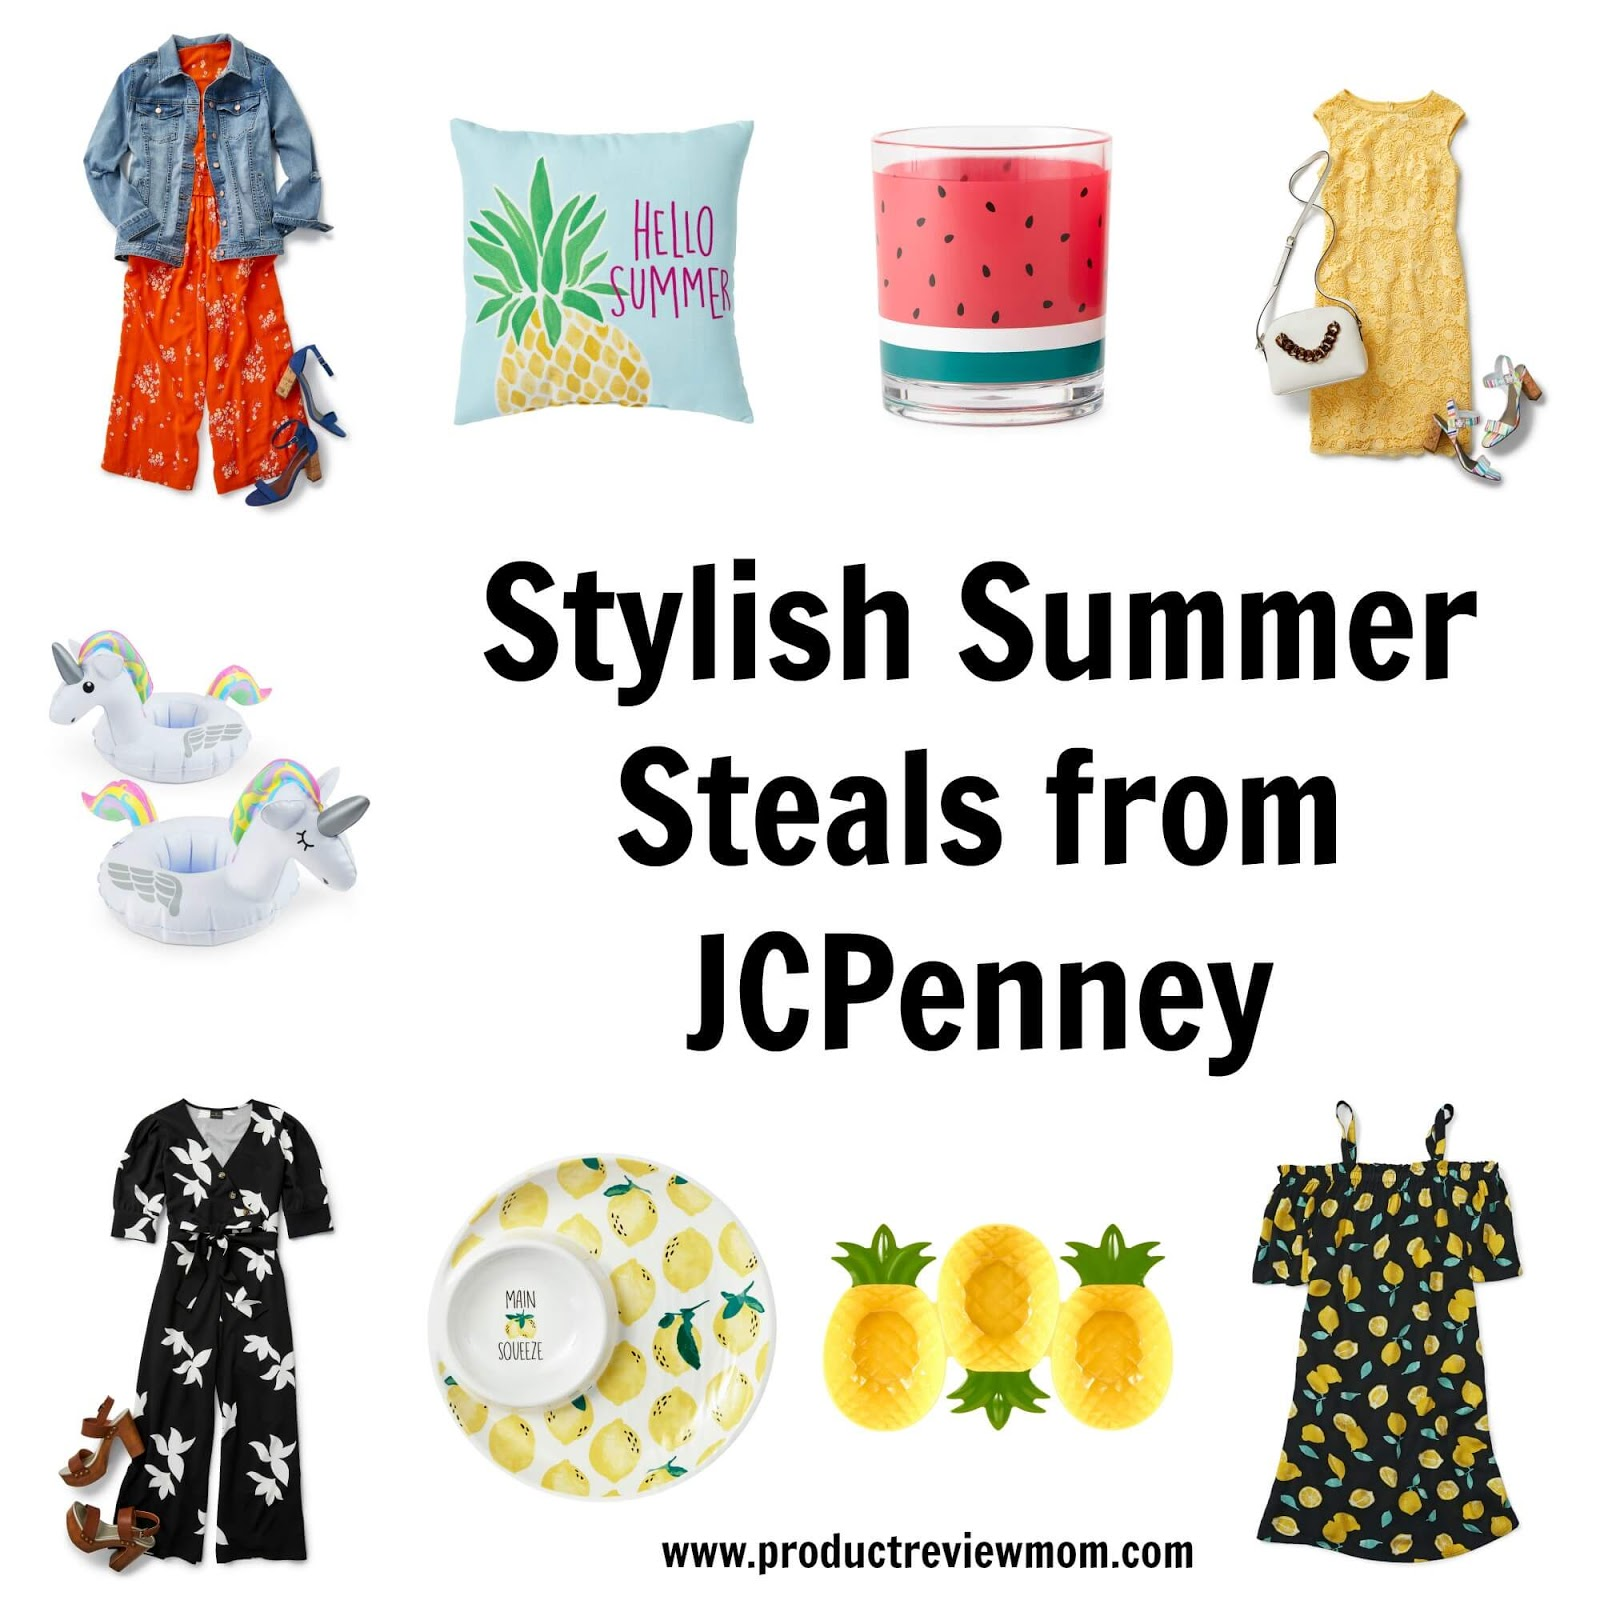 Stylish Summer Steals from JCPenney